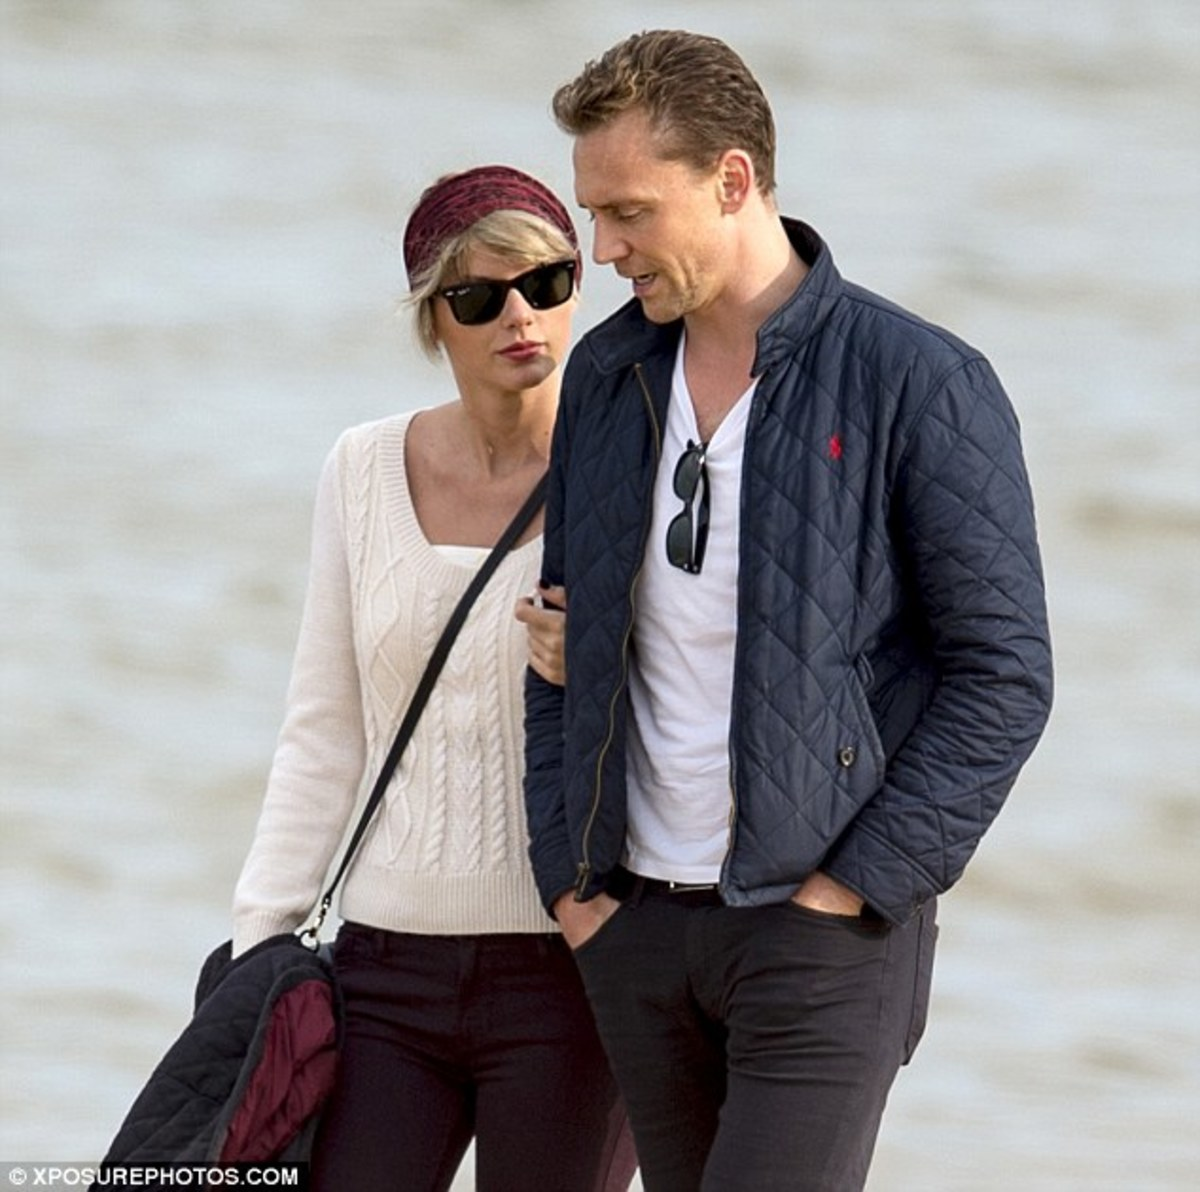 35B58FB900000578-3675041-Under_the_spotlight_Taylor_Swift_and_Tom_Hiddleston_s_relationsh-m-78_1467718138881